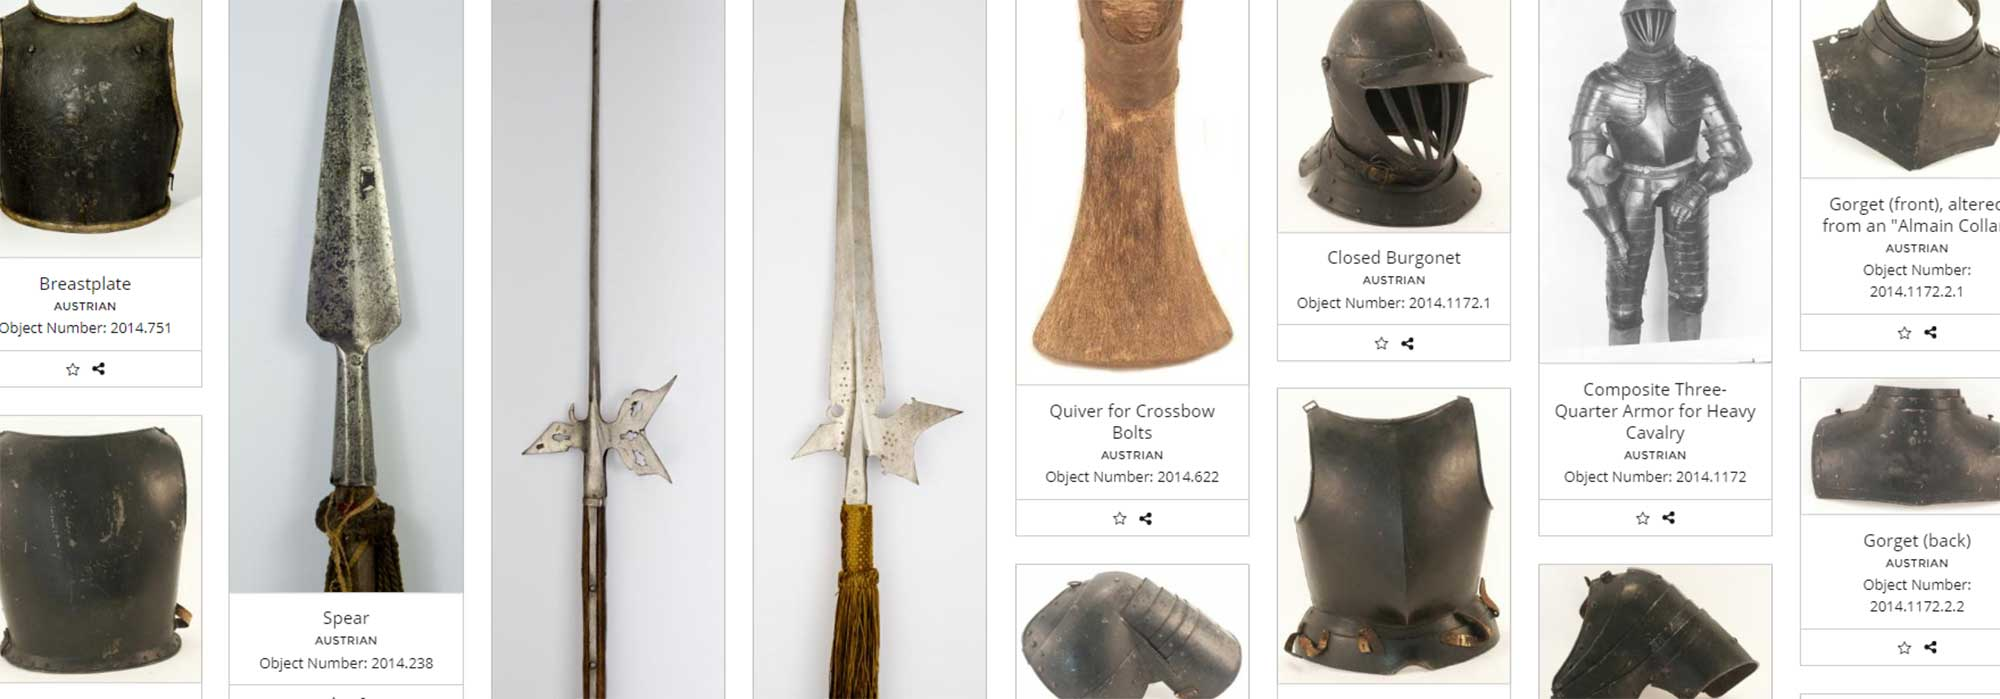 A screenshot of a page of objects in the Higgins Armory Collection online